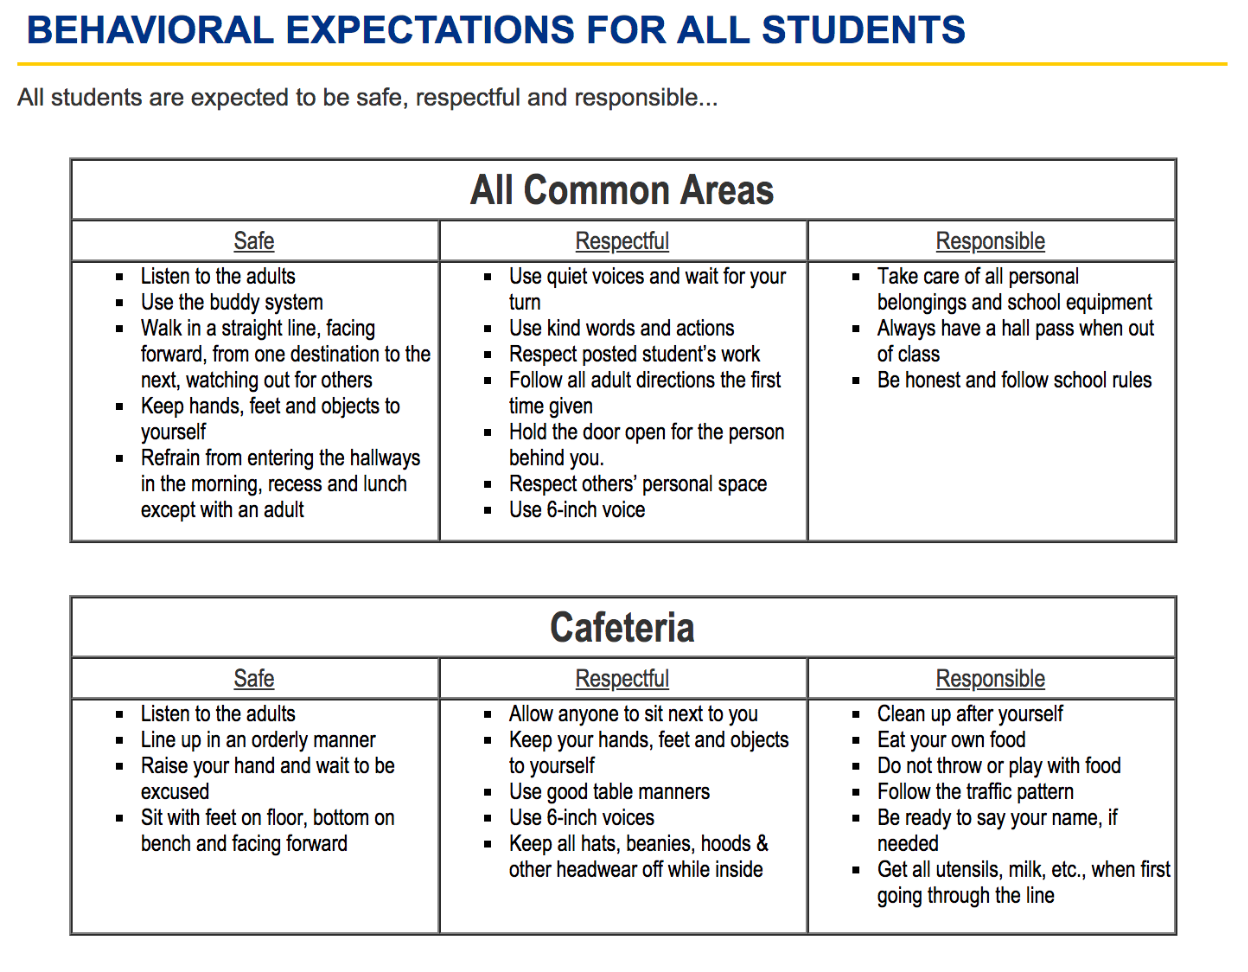 Behavioral Expectations For All Students